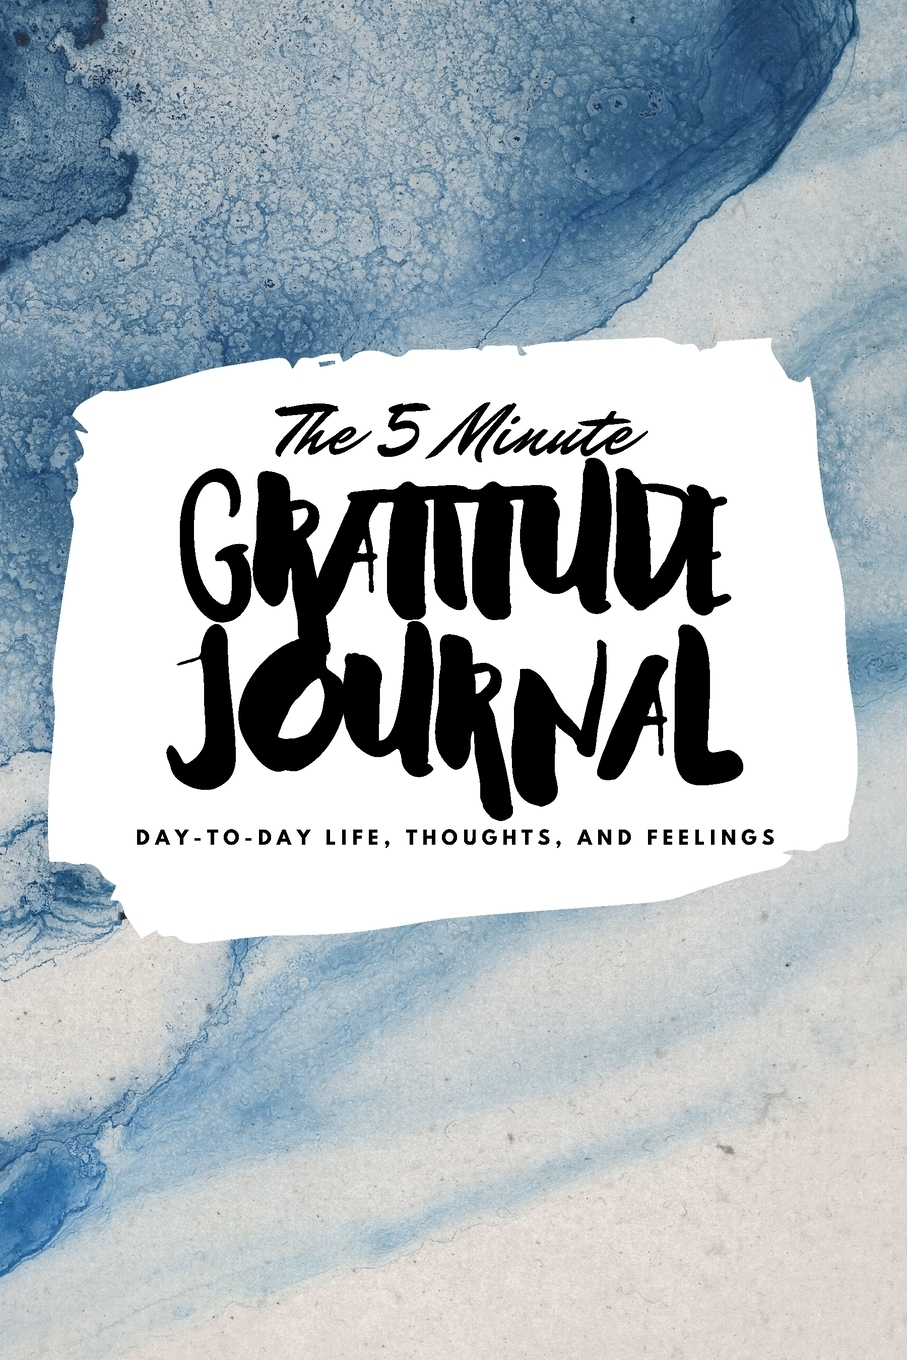 Sheba Blake. The 5 Minute Gratitude Journal. Day-To-Day Life, Thoughts, and Feelings (6x9 Softcover Journal)